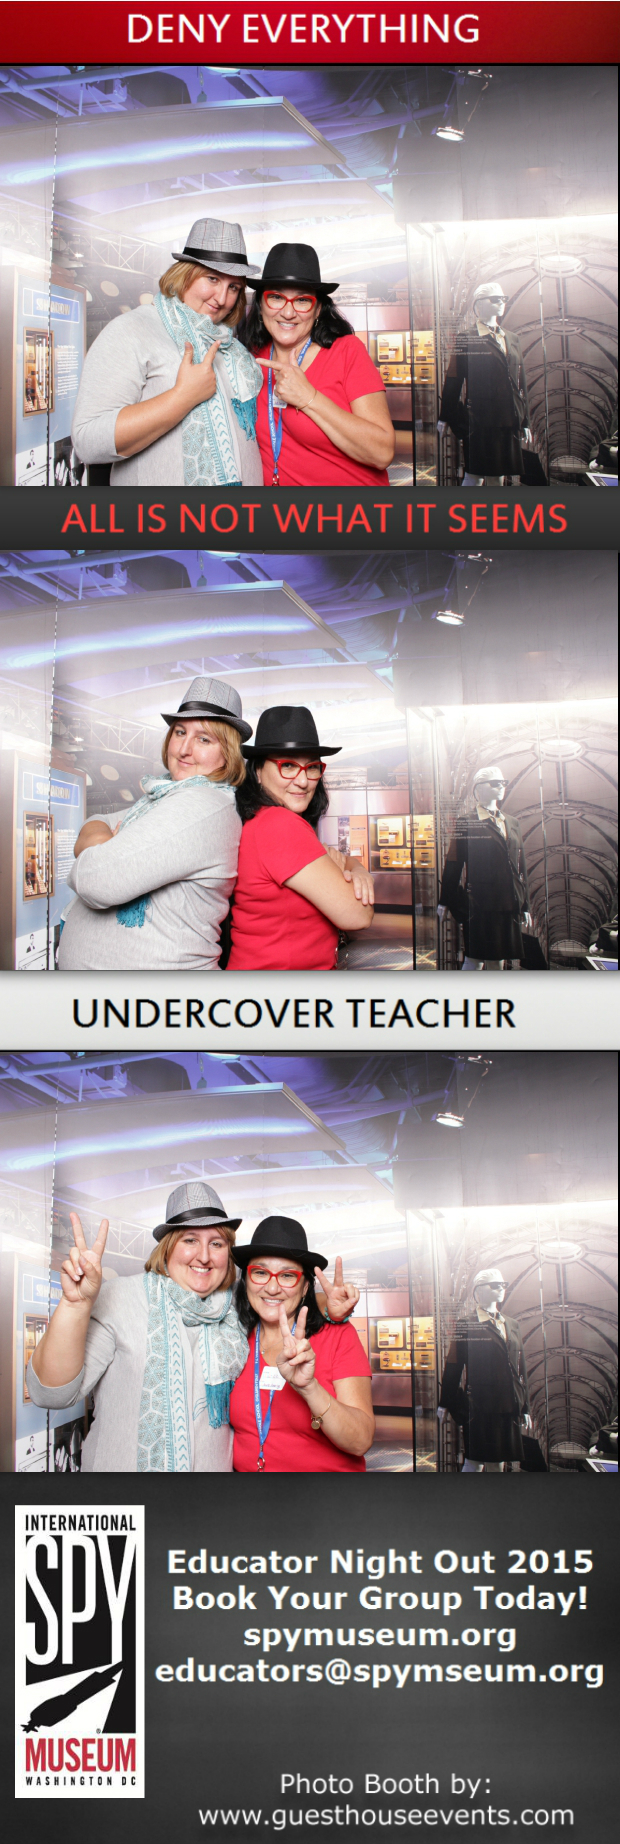 Guest House Events Photo Booth Spy Museum Educator Night Out (66).jpg